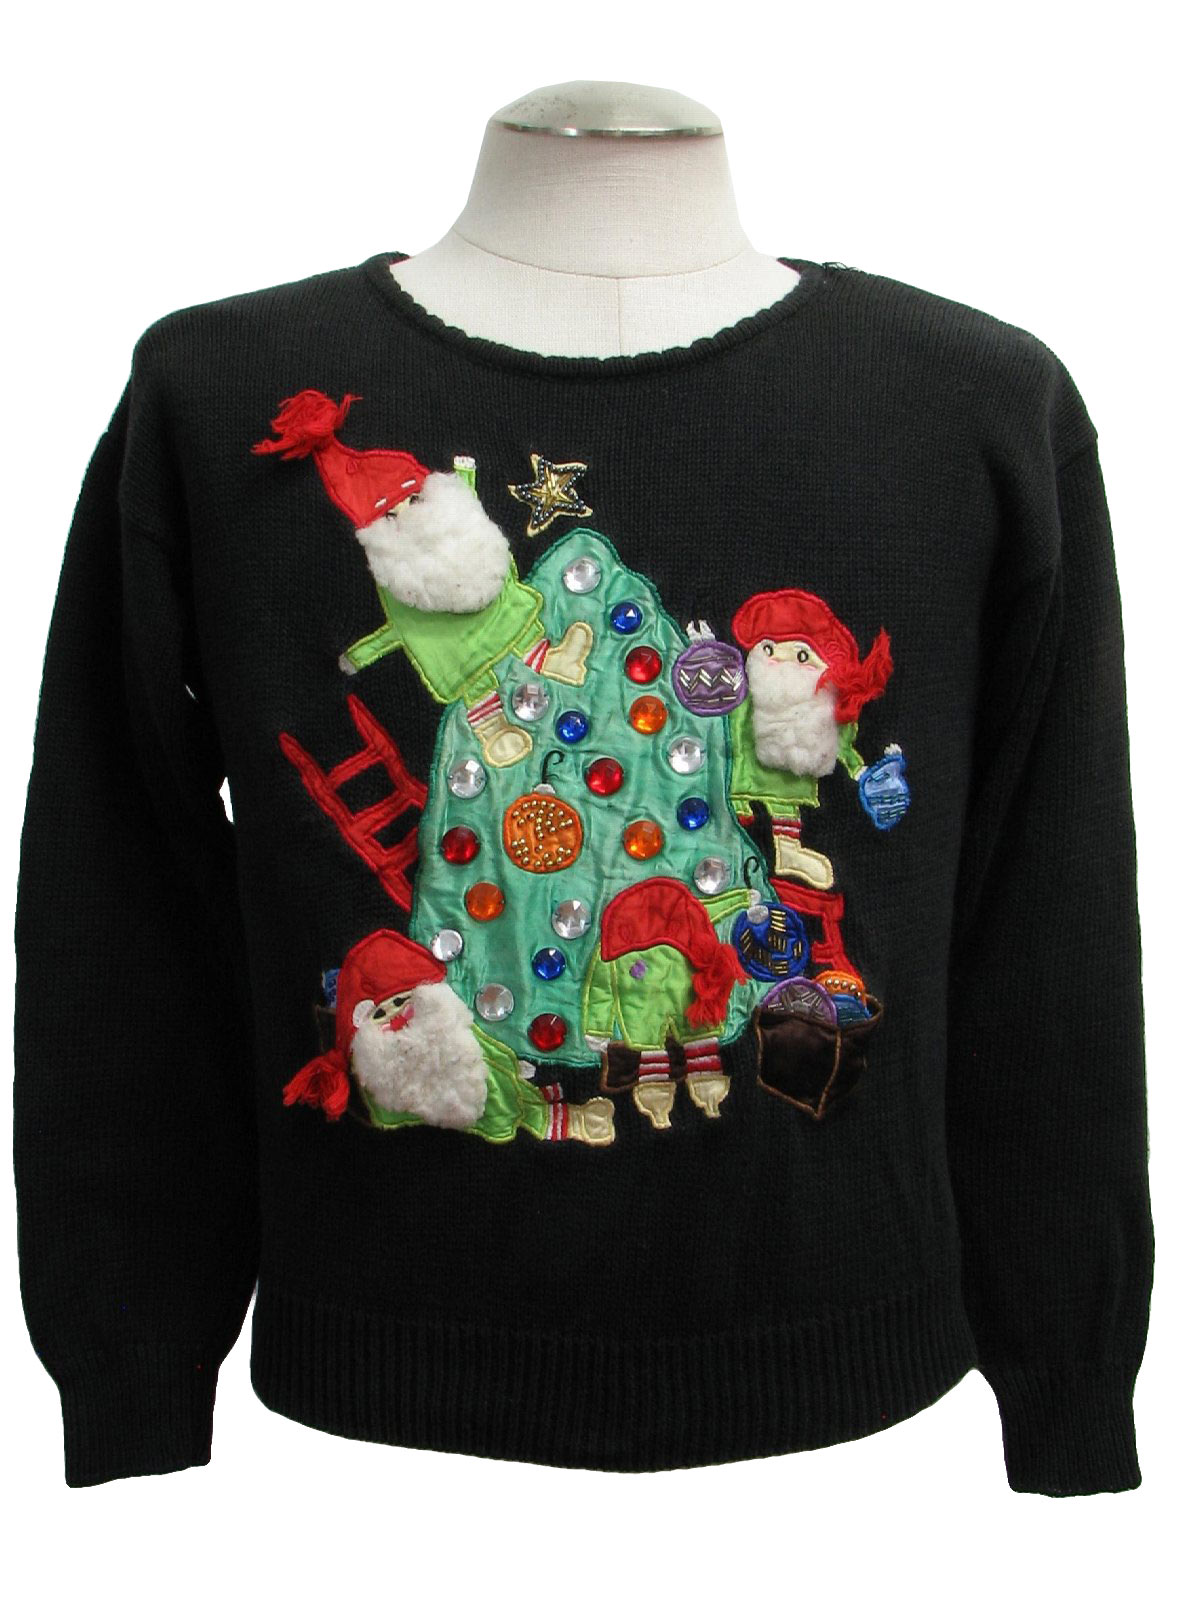 Womens Creepy Elves Ugly Christmas Sweater: -Gladys Bagley- Womens ...